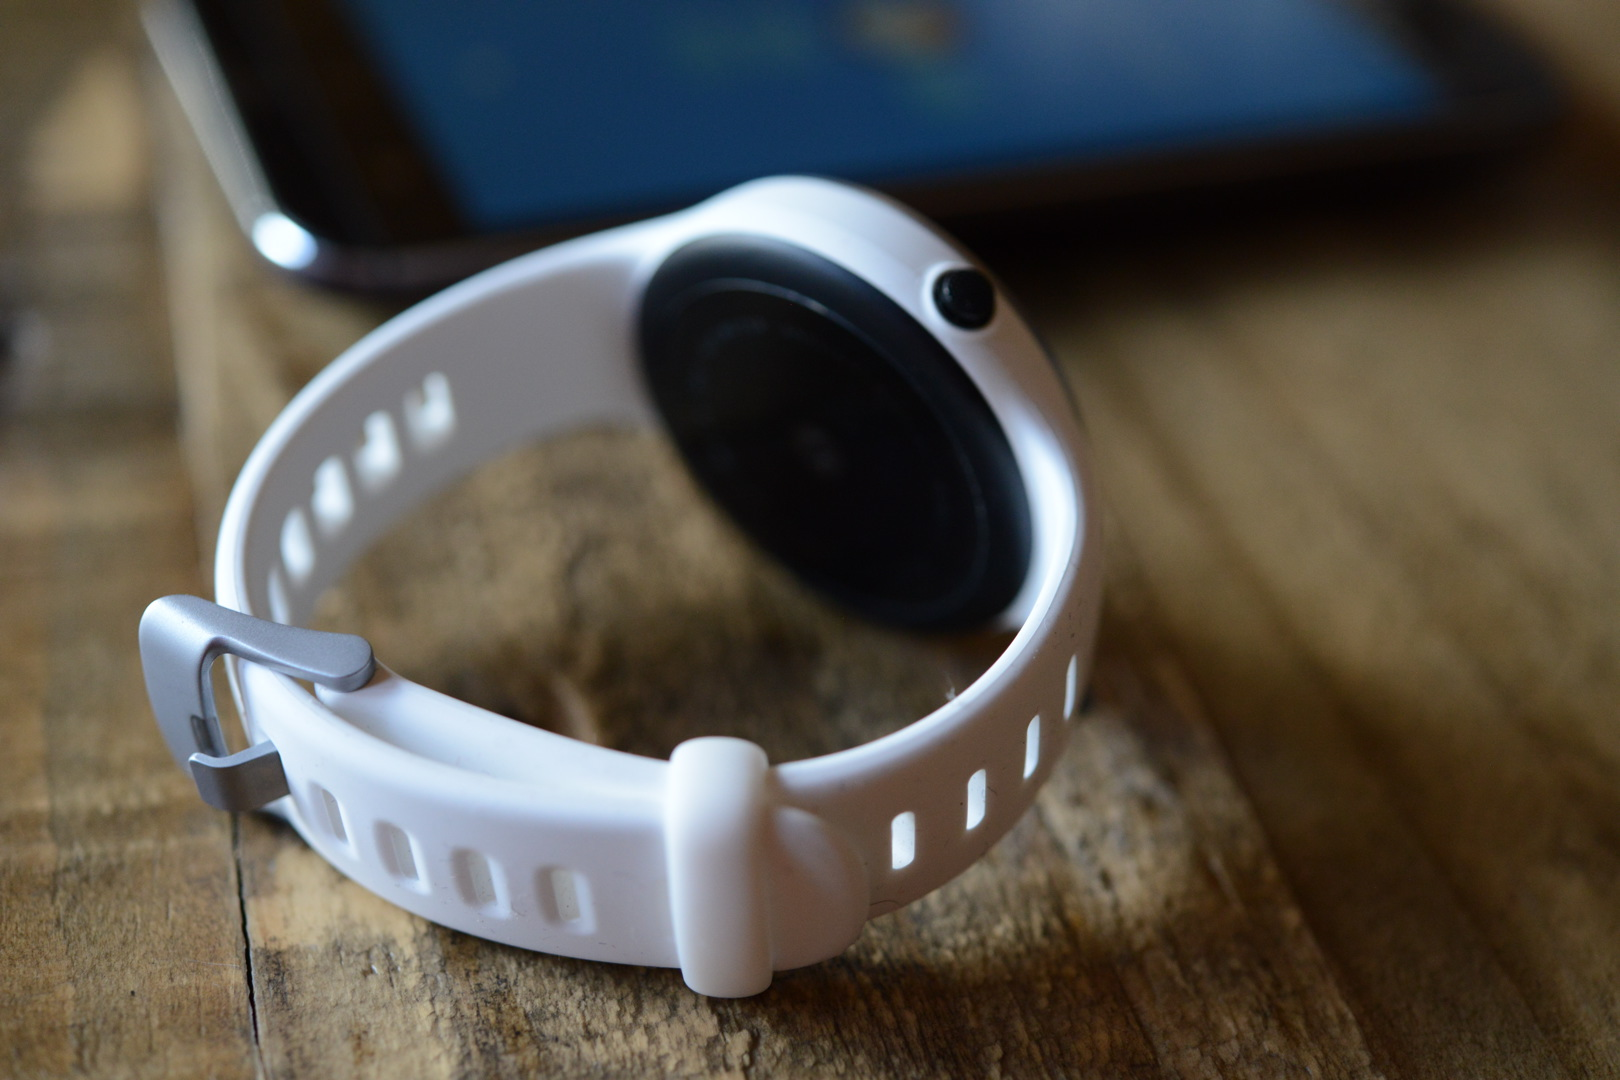 big_moto_360_sport_smartwatch_4388.jpg